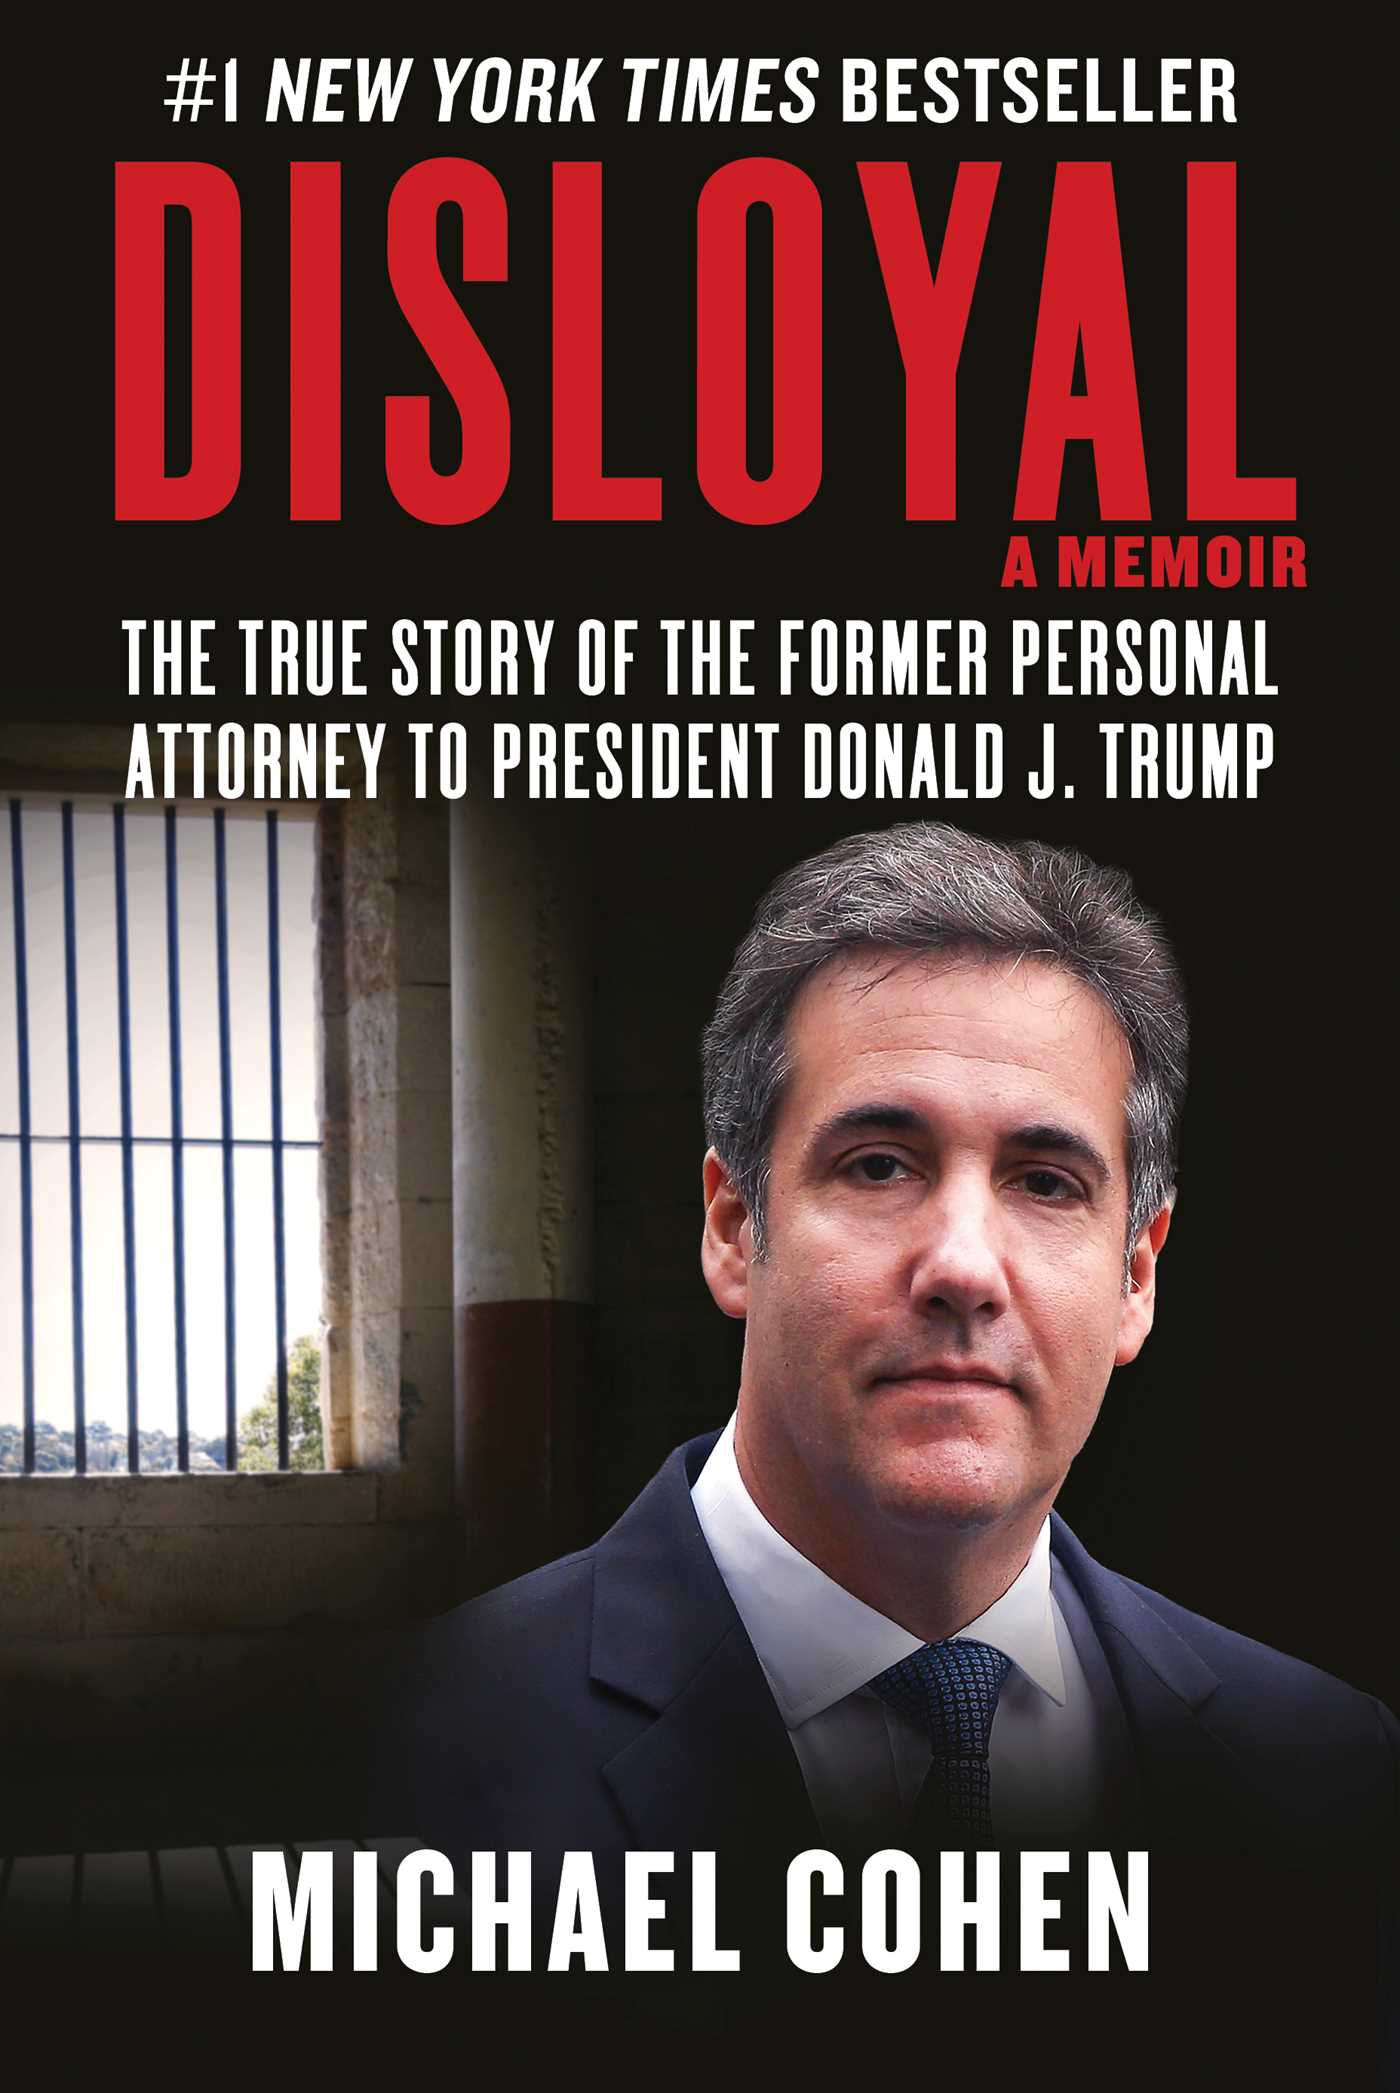 Disloyal: A Memoir The True Story of the Former Personal Attorney to President Donald J. Trump